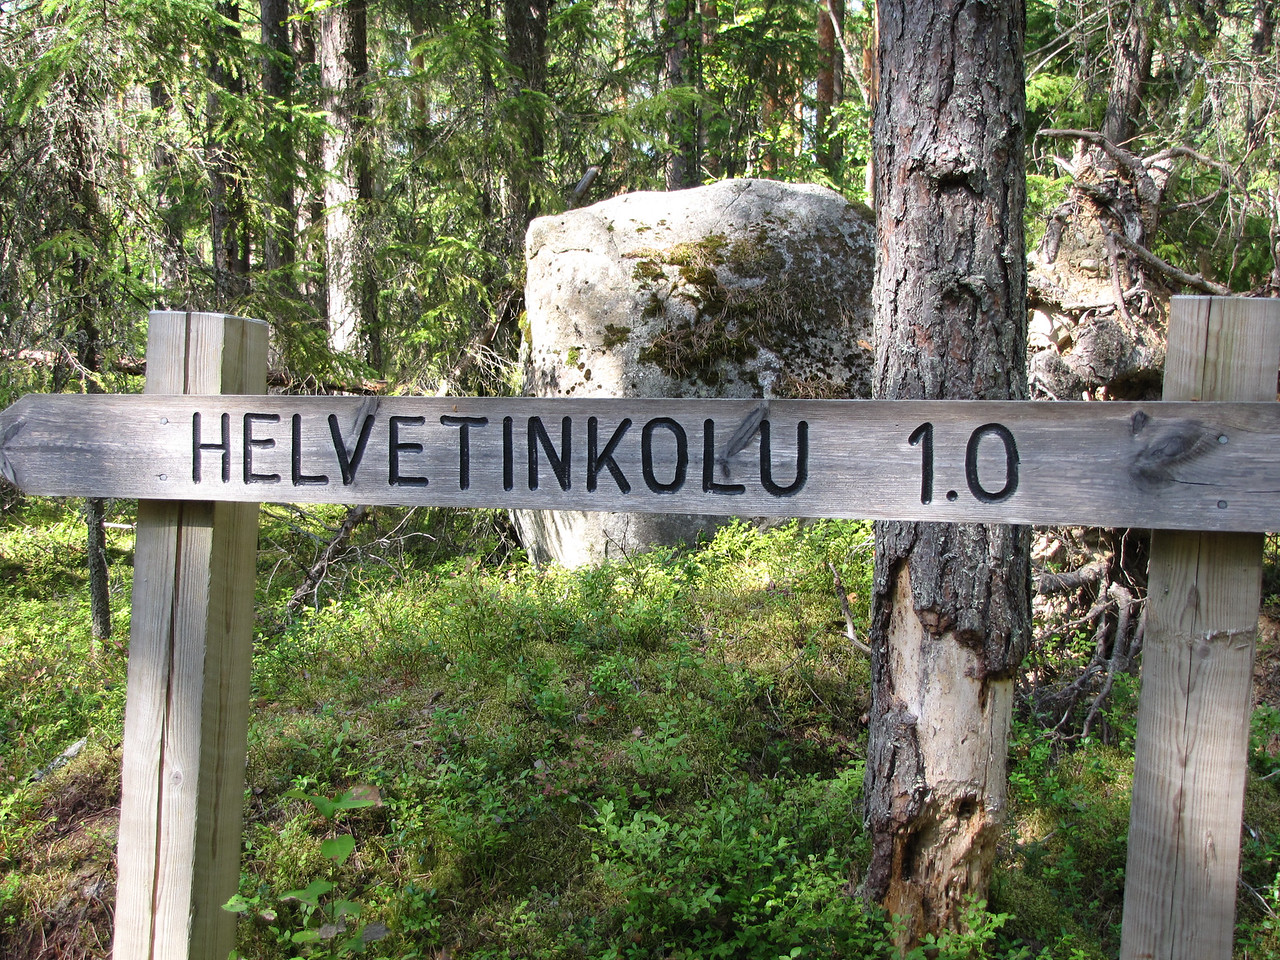 The cleft Helvetinkolu at the south-eastern end of Lake Helvetinjärvi where we swam and picnicked